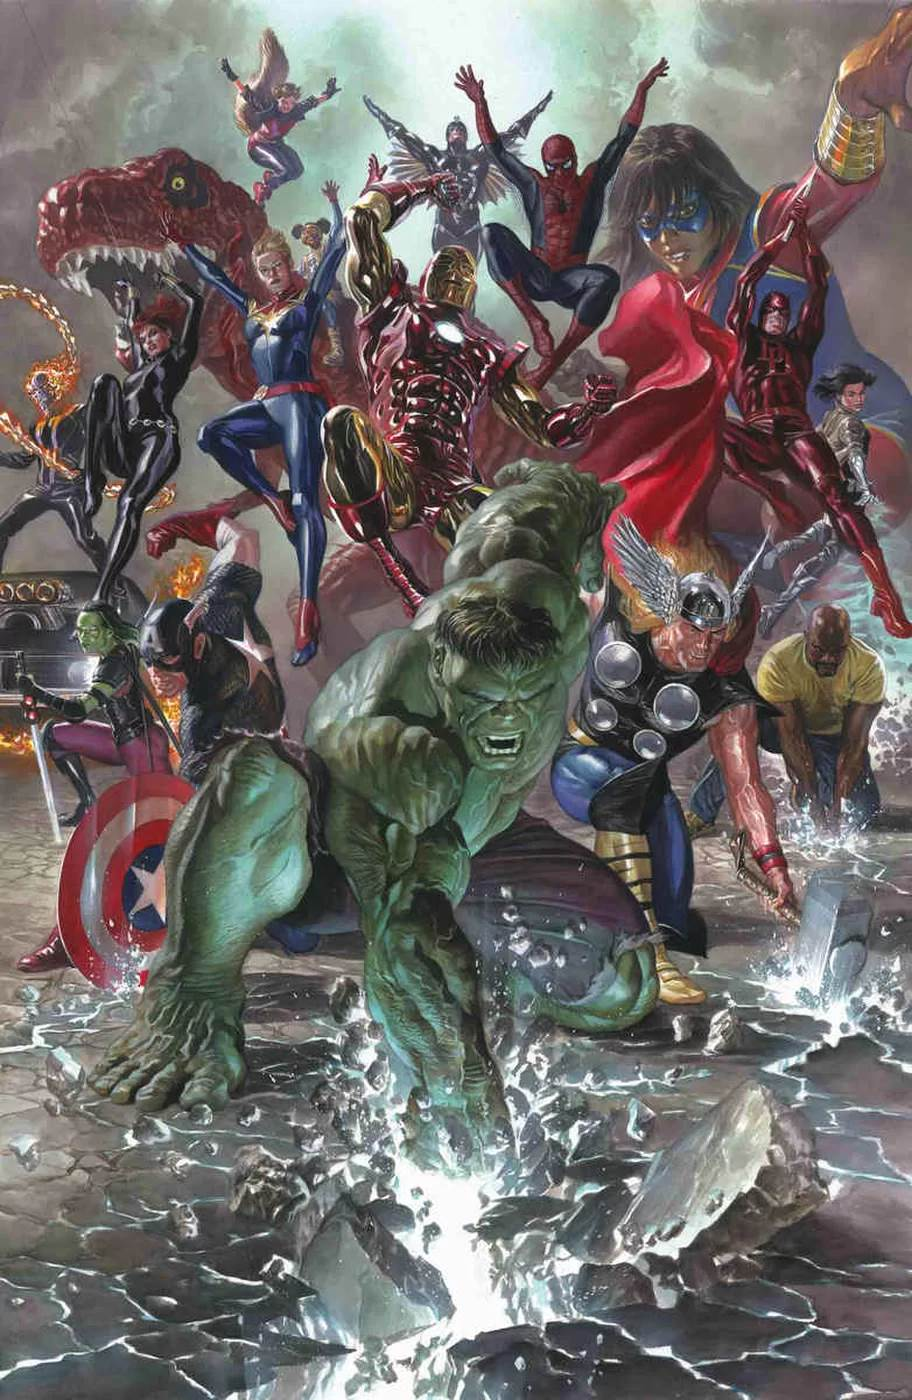 Marvel Comics Legacy & Mighty Thor #700 & #701 Spoilers ...